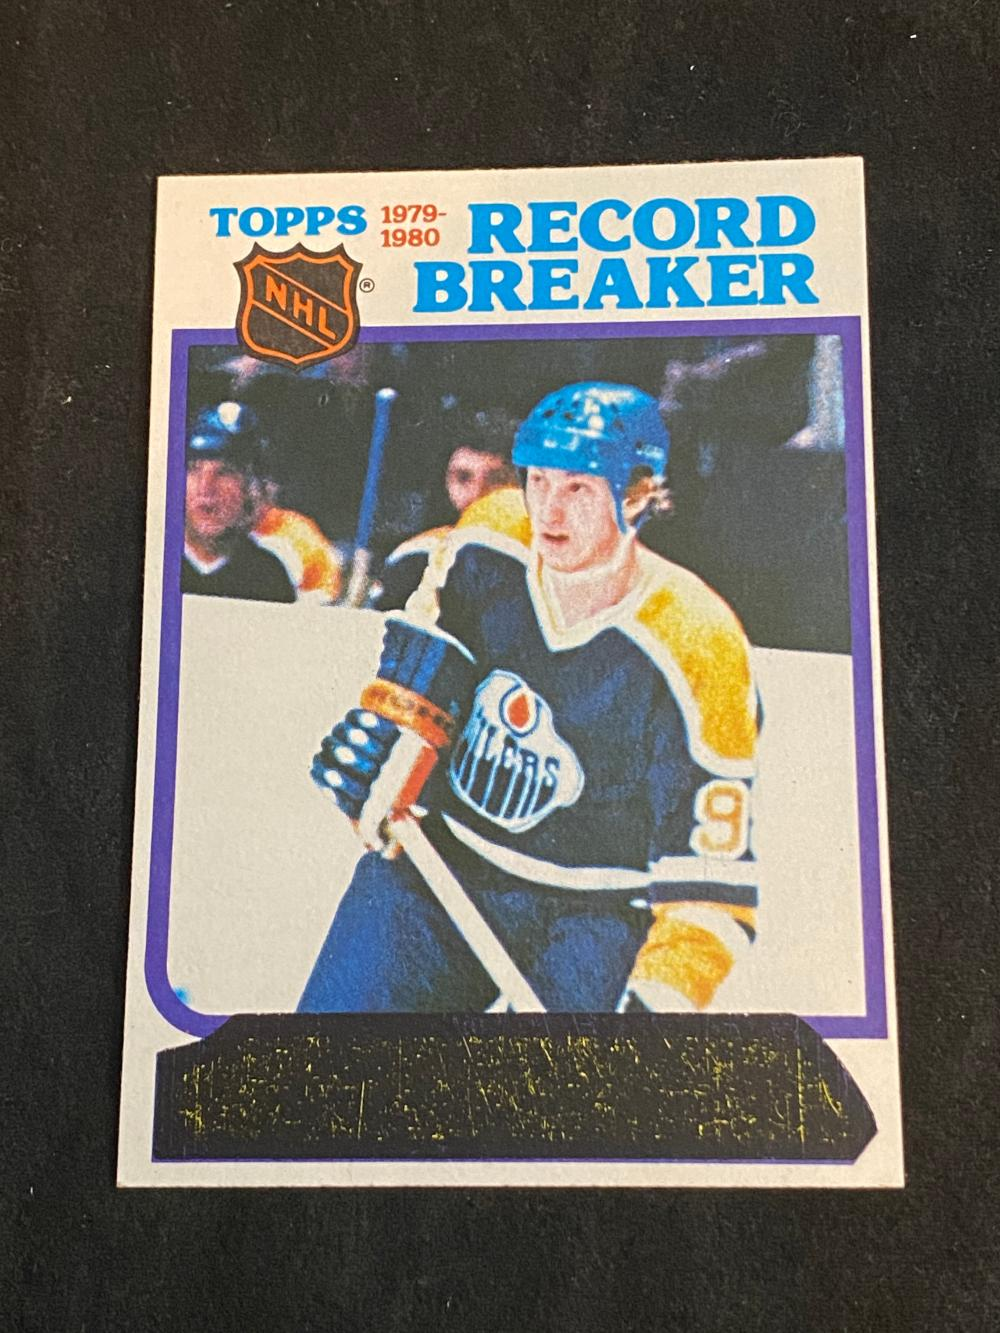 (NM) 1980-81 Topps Wayne Gretzky Record Breakers (Unscratched) #3 Hockey Card